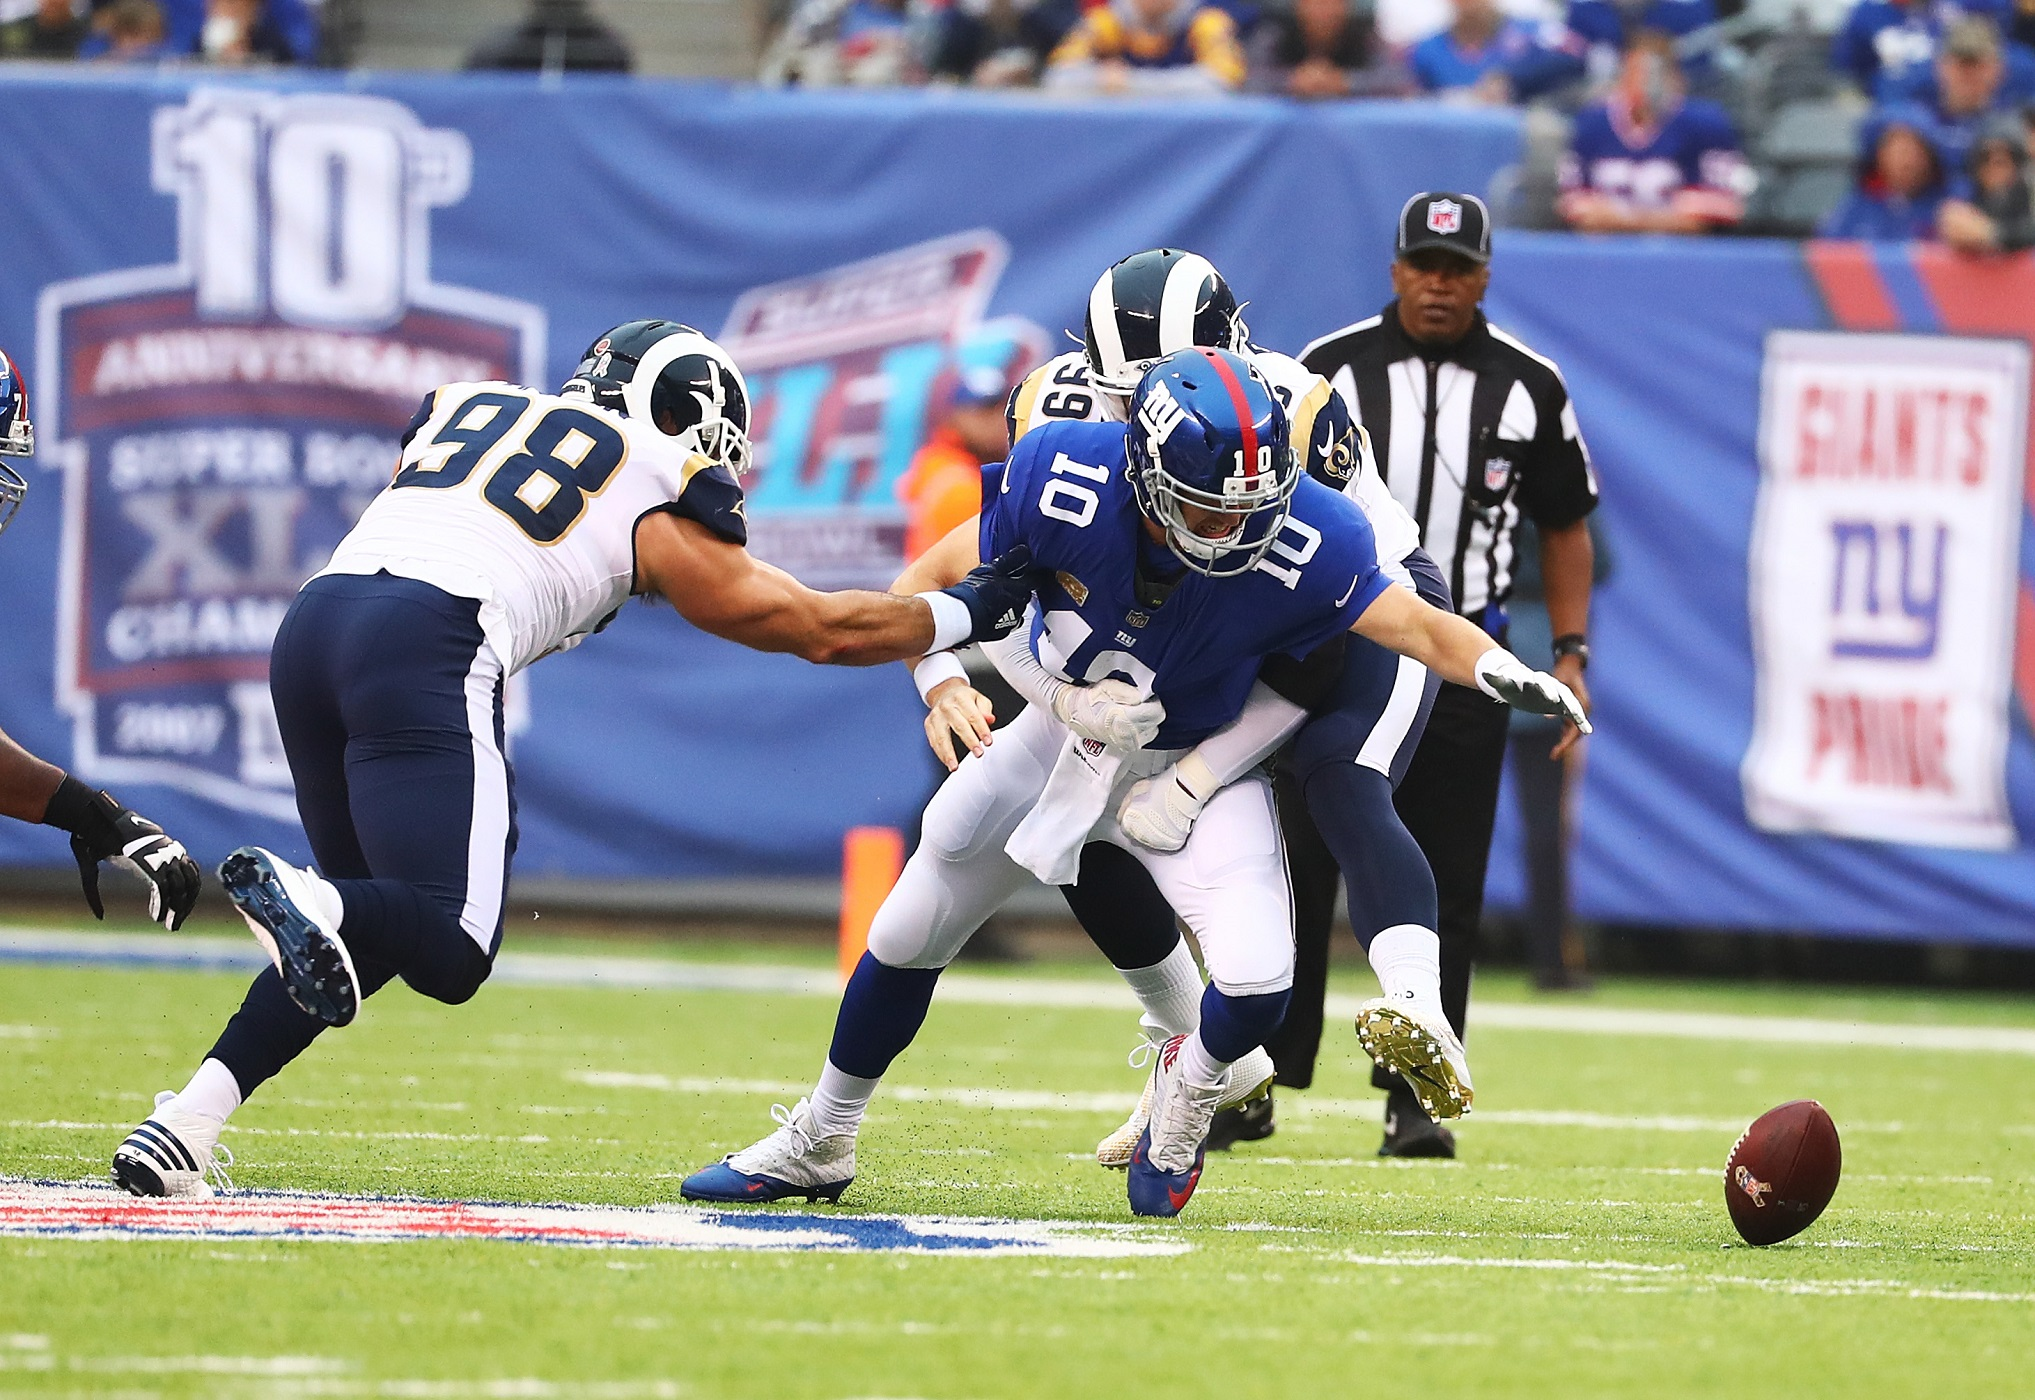 Rams Rout Hapless Giants, 51-17, in Rainy Game at the Meadowlands